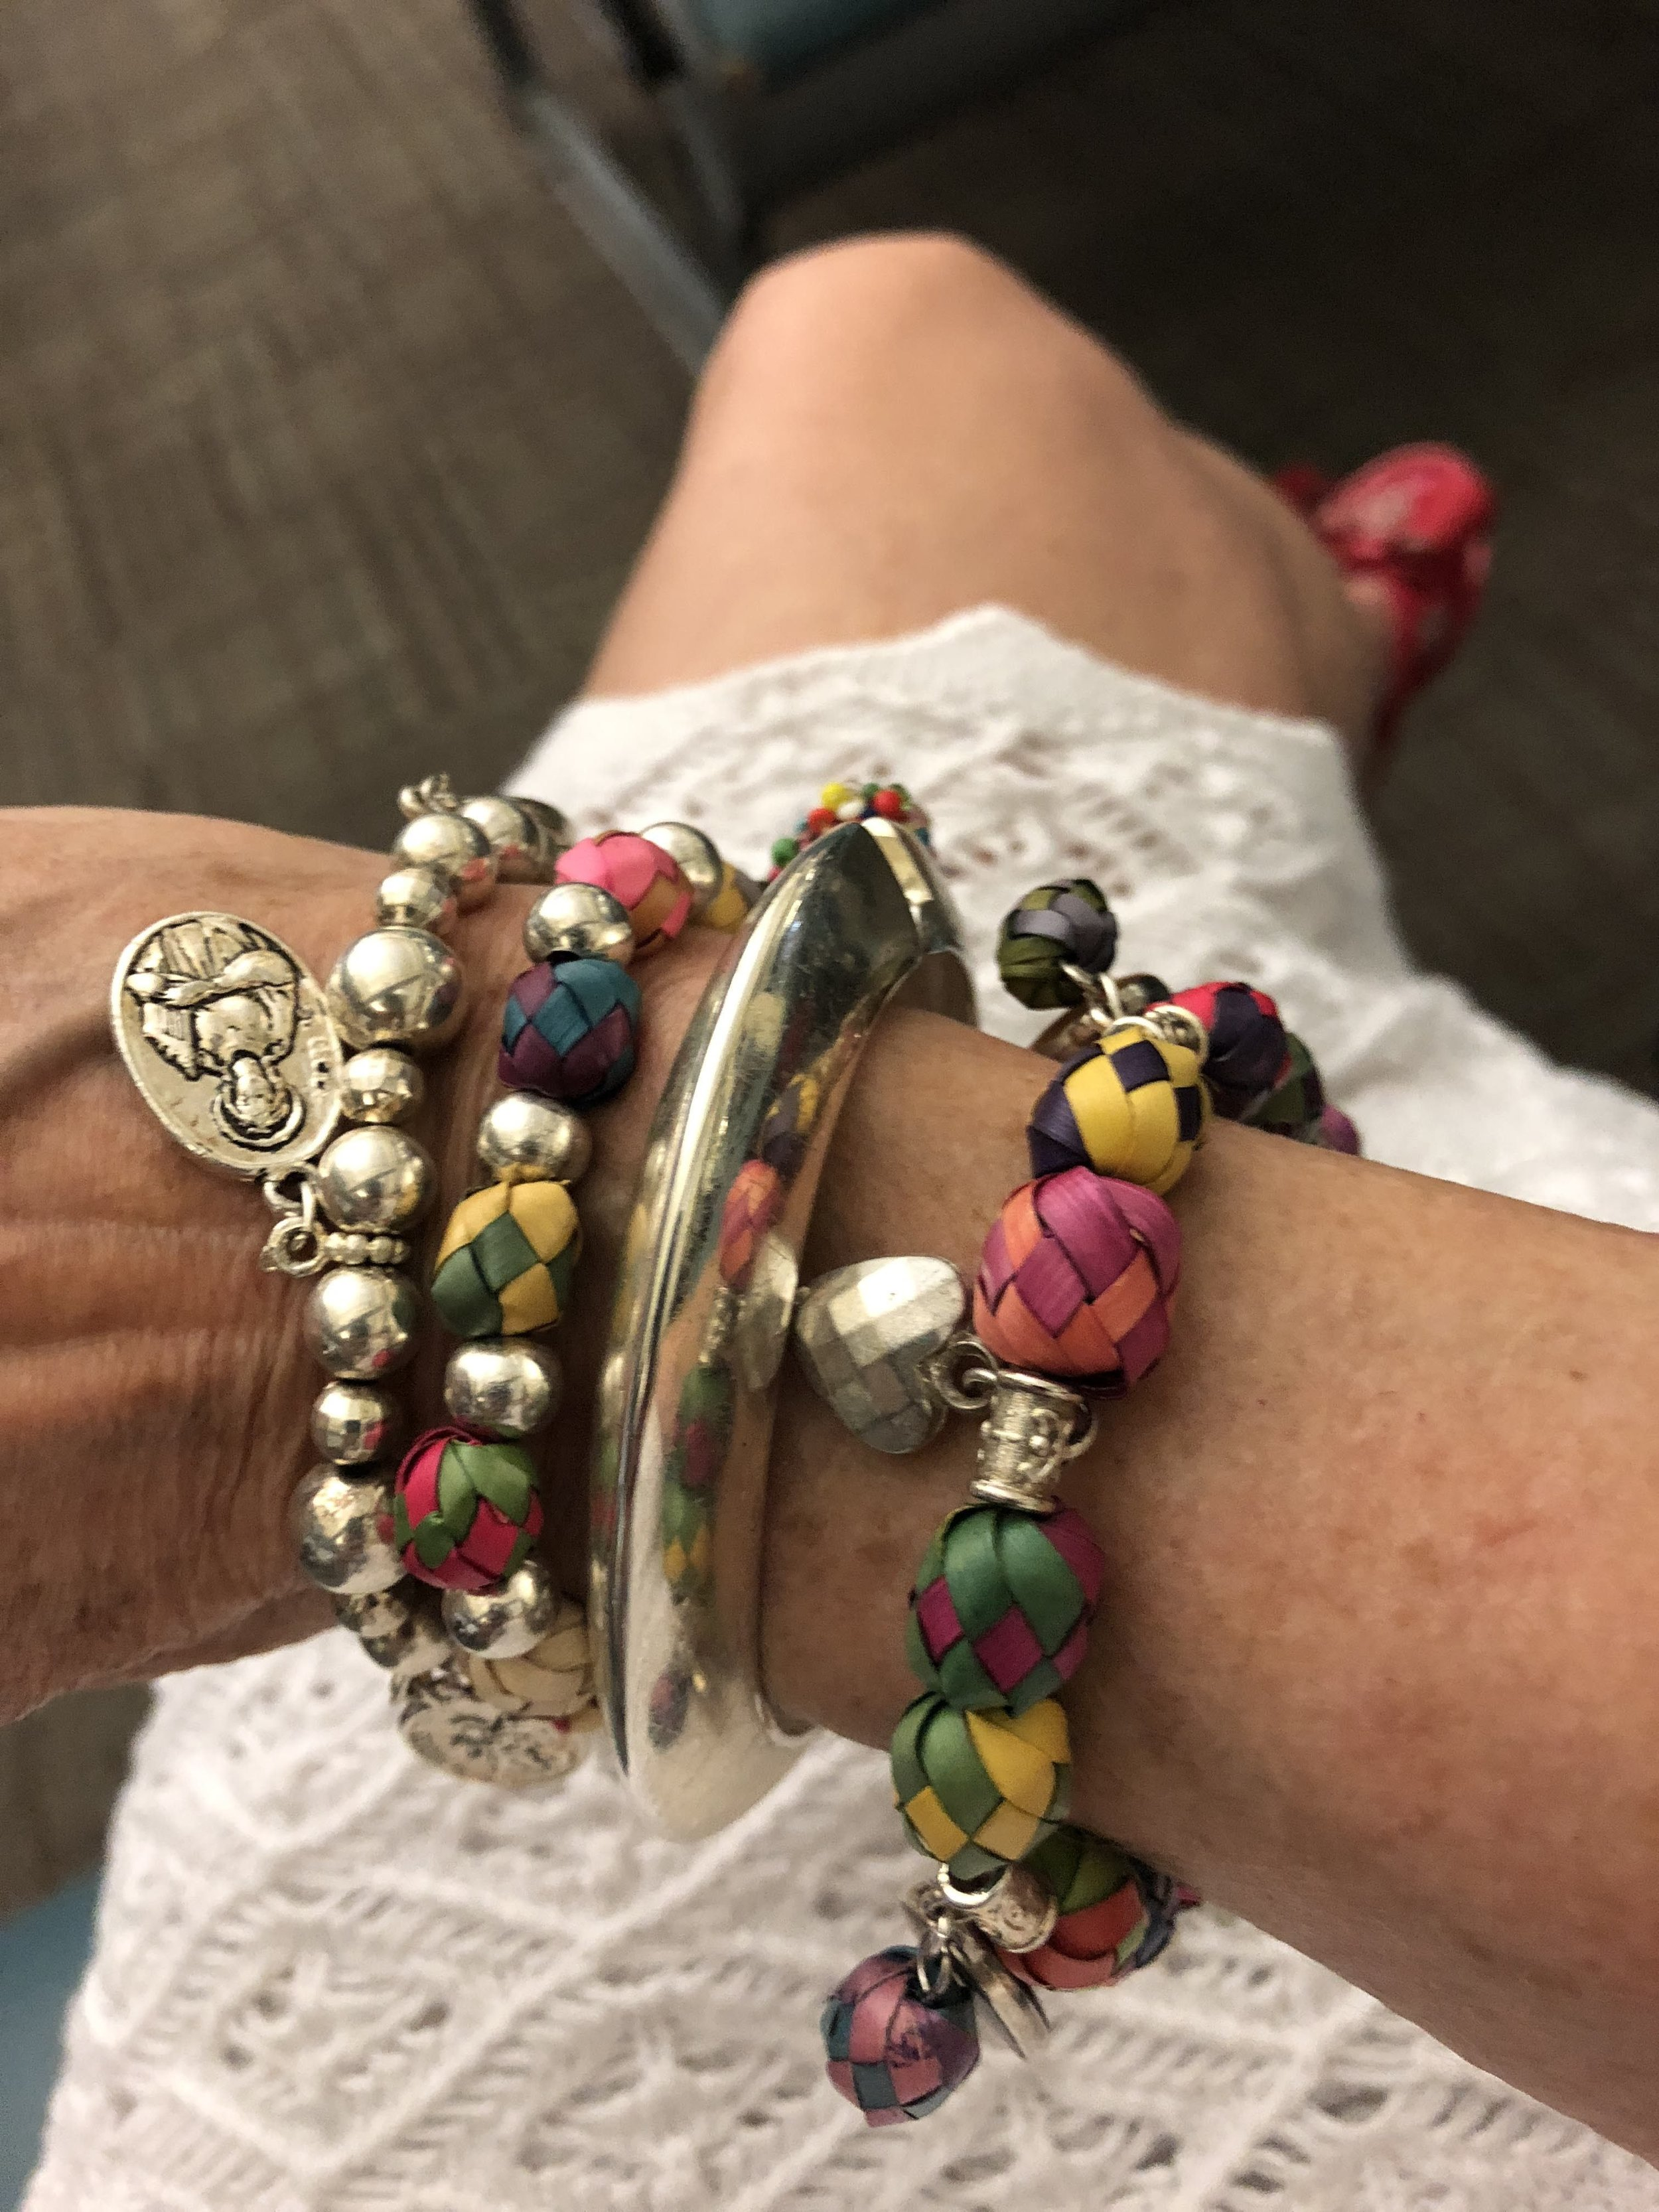 Inexpensive, but charming and unique jewelry is one of Astrids' favorite travel souvenirs